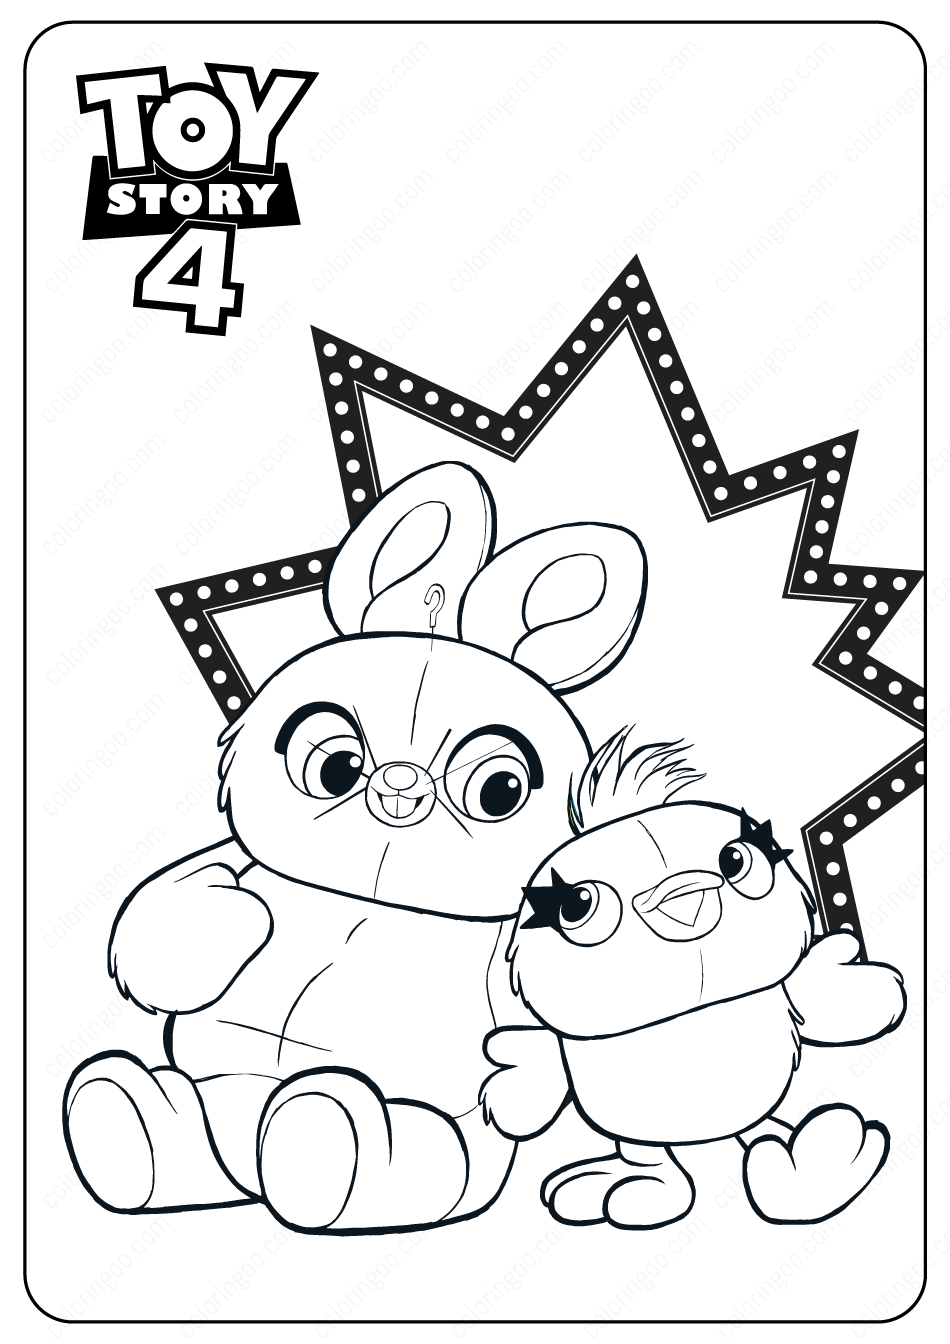 Free Printable Toy Story 4 Ducky And Bunny Pdf Coloring Pages